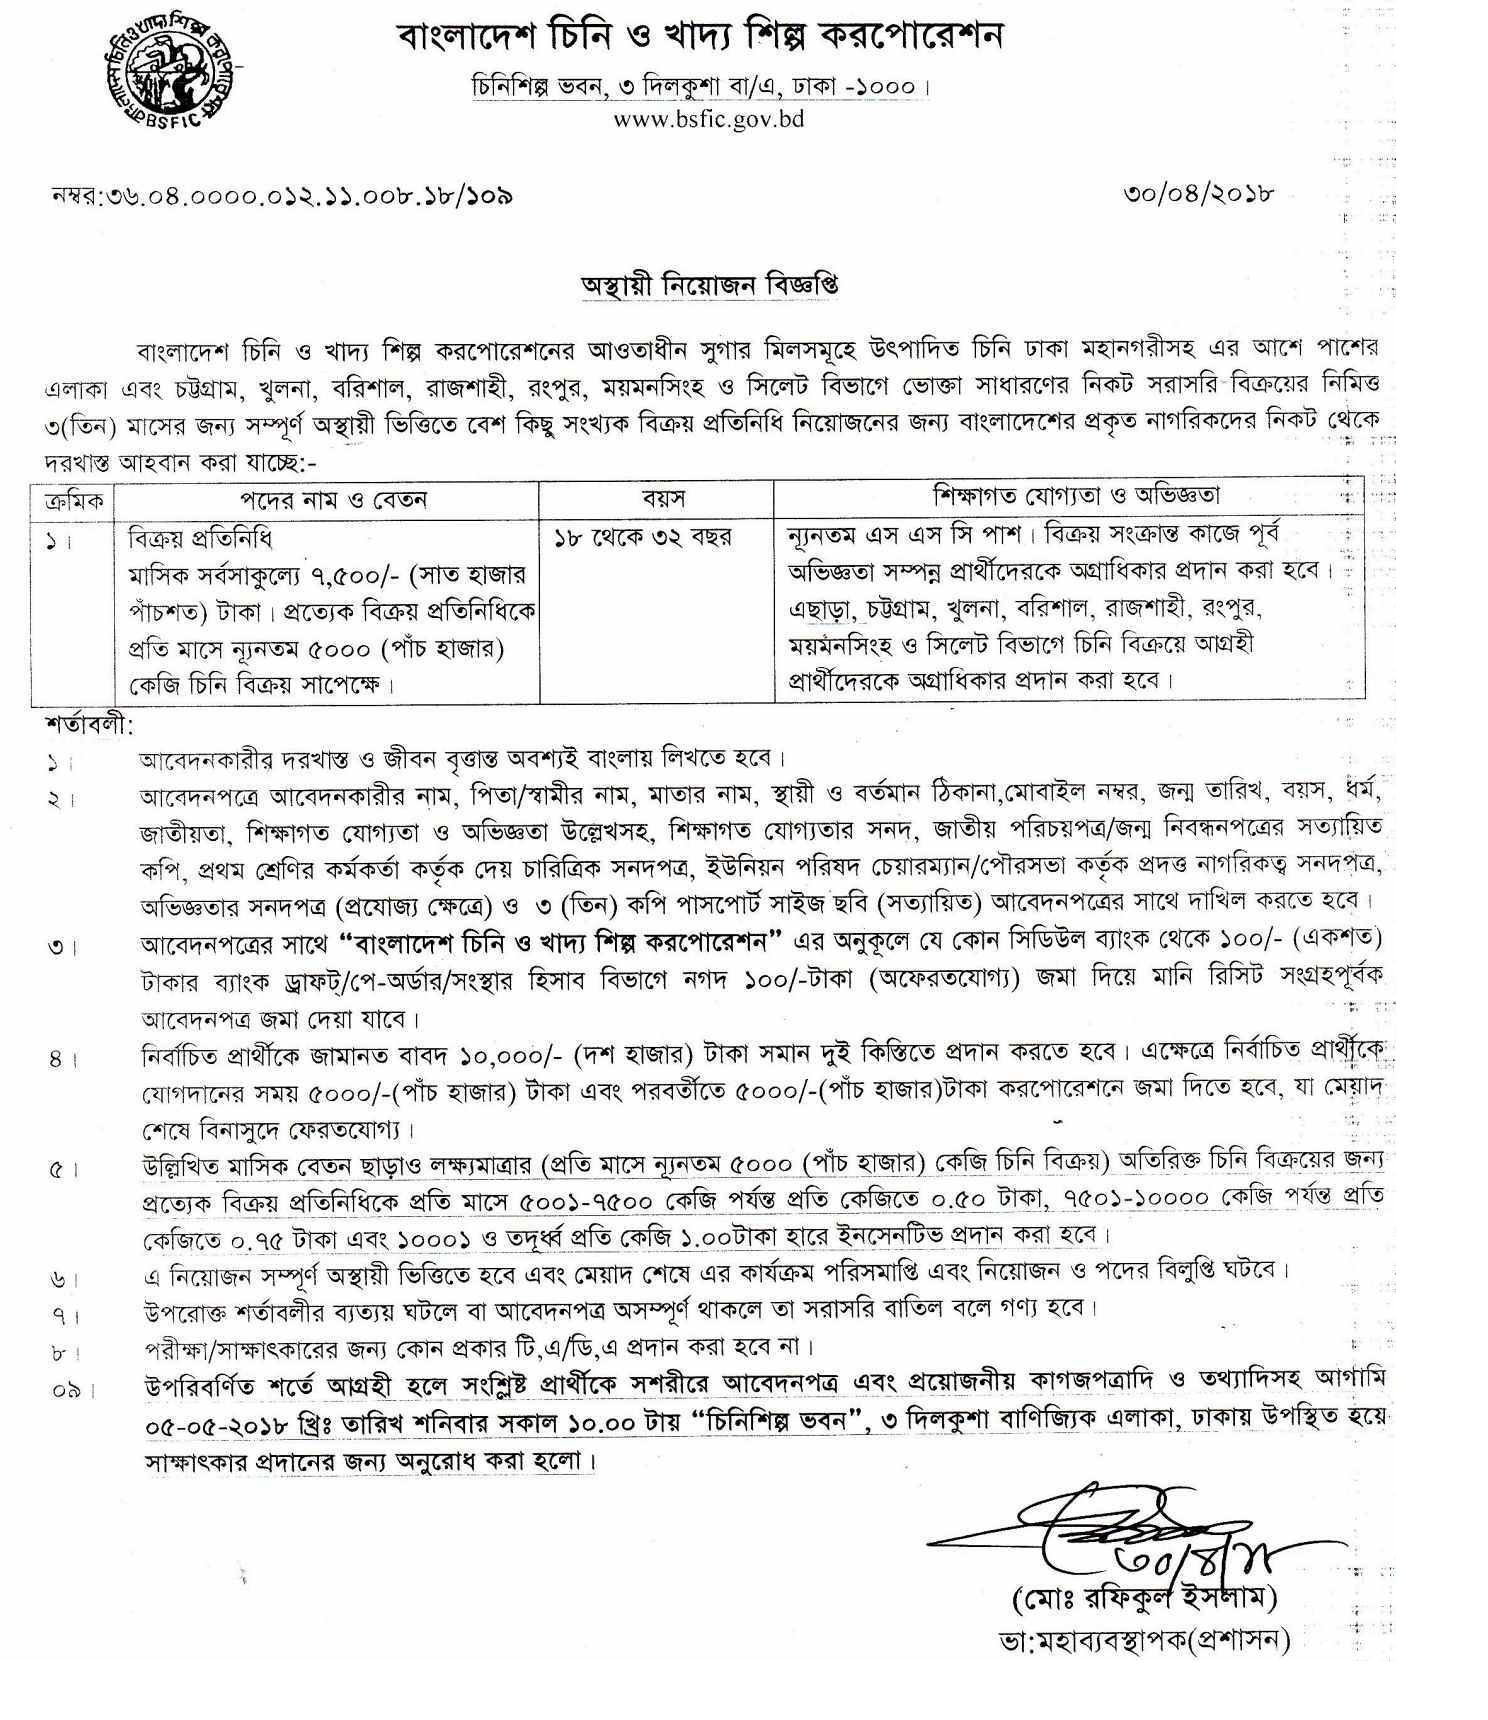 BANGLADESH SUGAR & FOOD INDUSTRIES CORPORATION BSFIC JOB CIRCULAR 2018